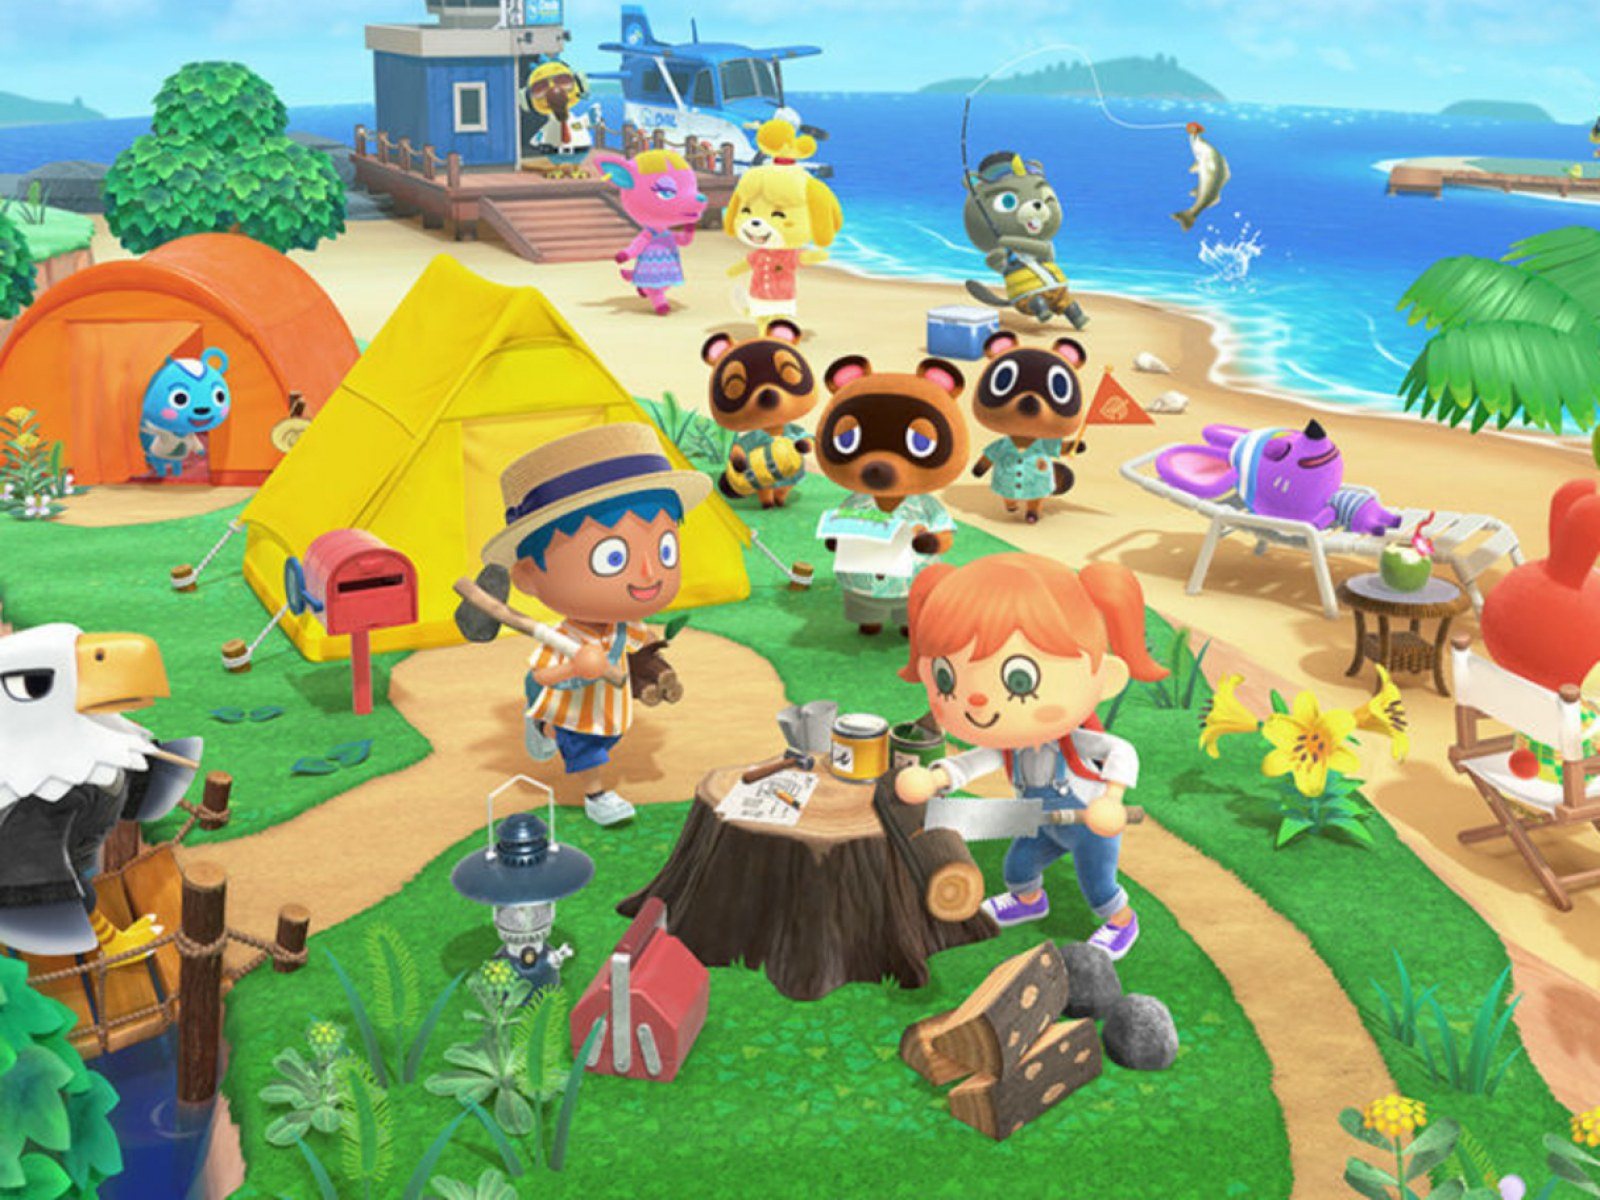 Animal Crossing New Horizons Clothes Guide The Best Outfits To Input Into Your Town